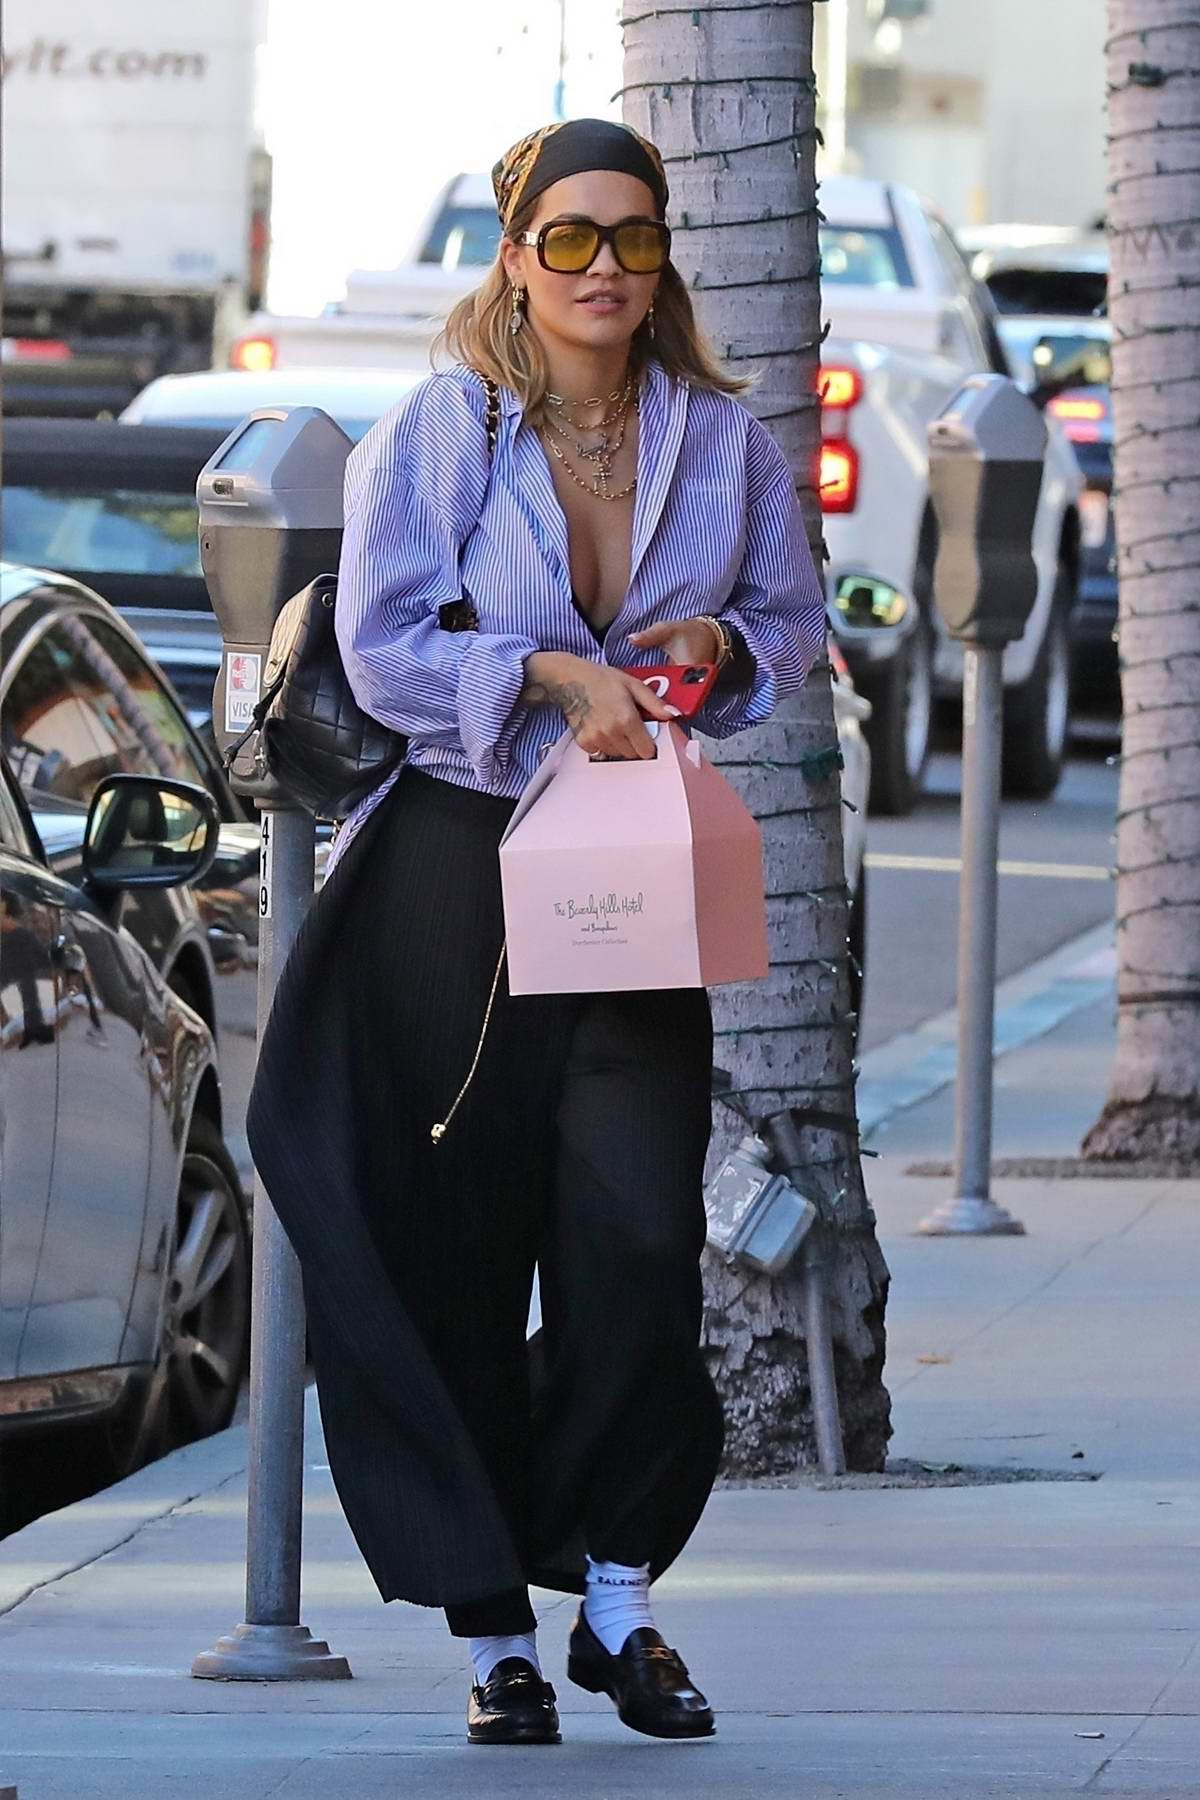 Rita Ora looks trendy as she steps out for jewelry shopping in Beverly Hills, California